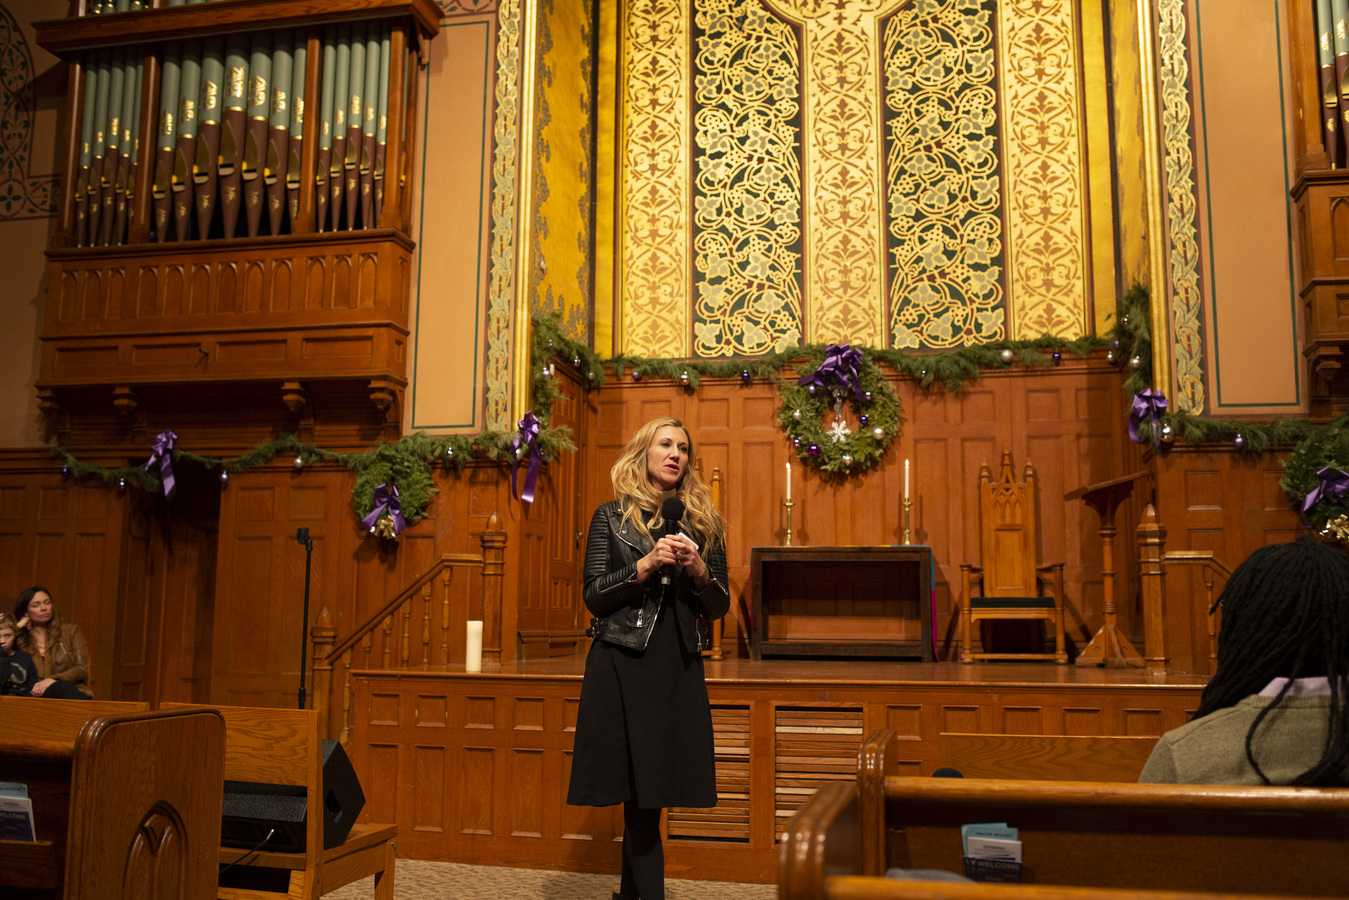 Say No To War Interfaith Peace Vigil Middle Collegiate Church 1/7/20 Rev. Amanda Hambrick Ashcraft, Executive Minister of Middle Collegiate Church